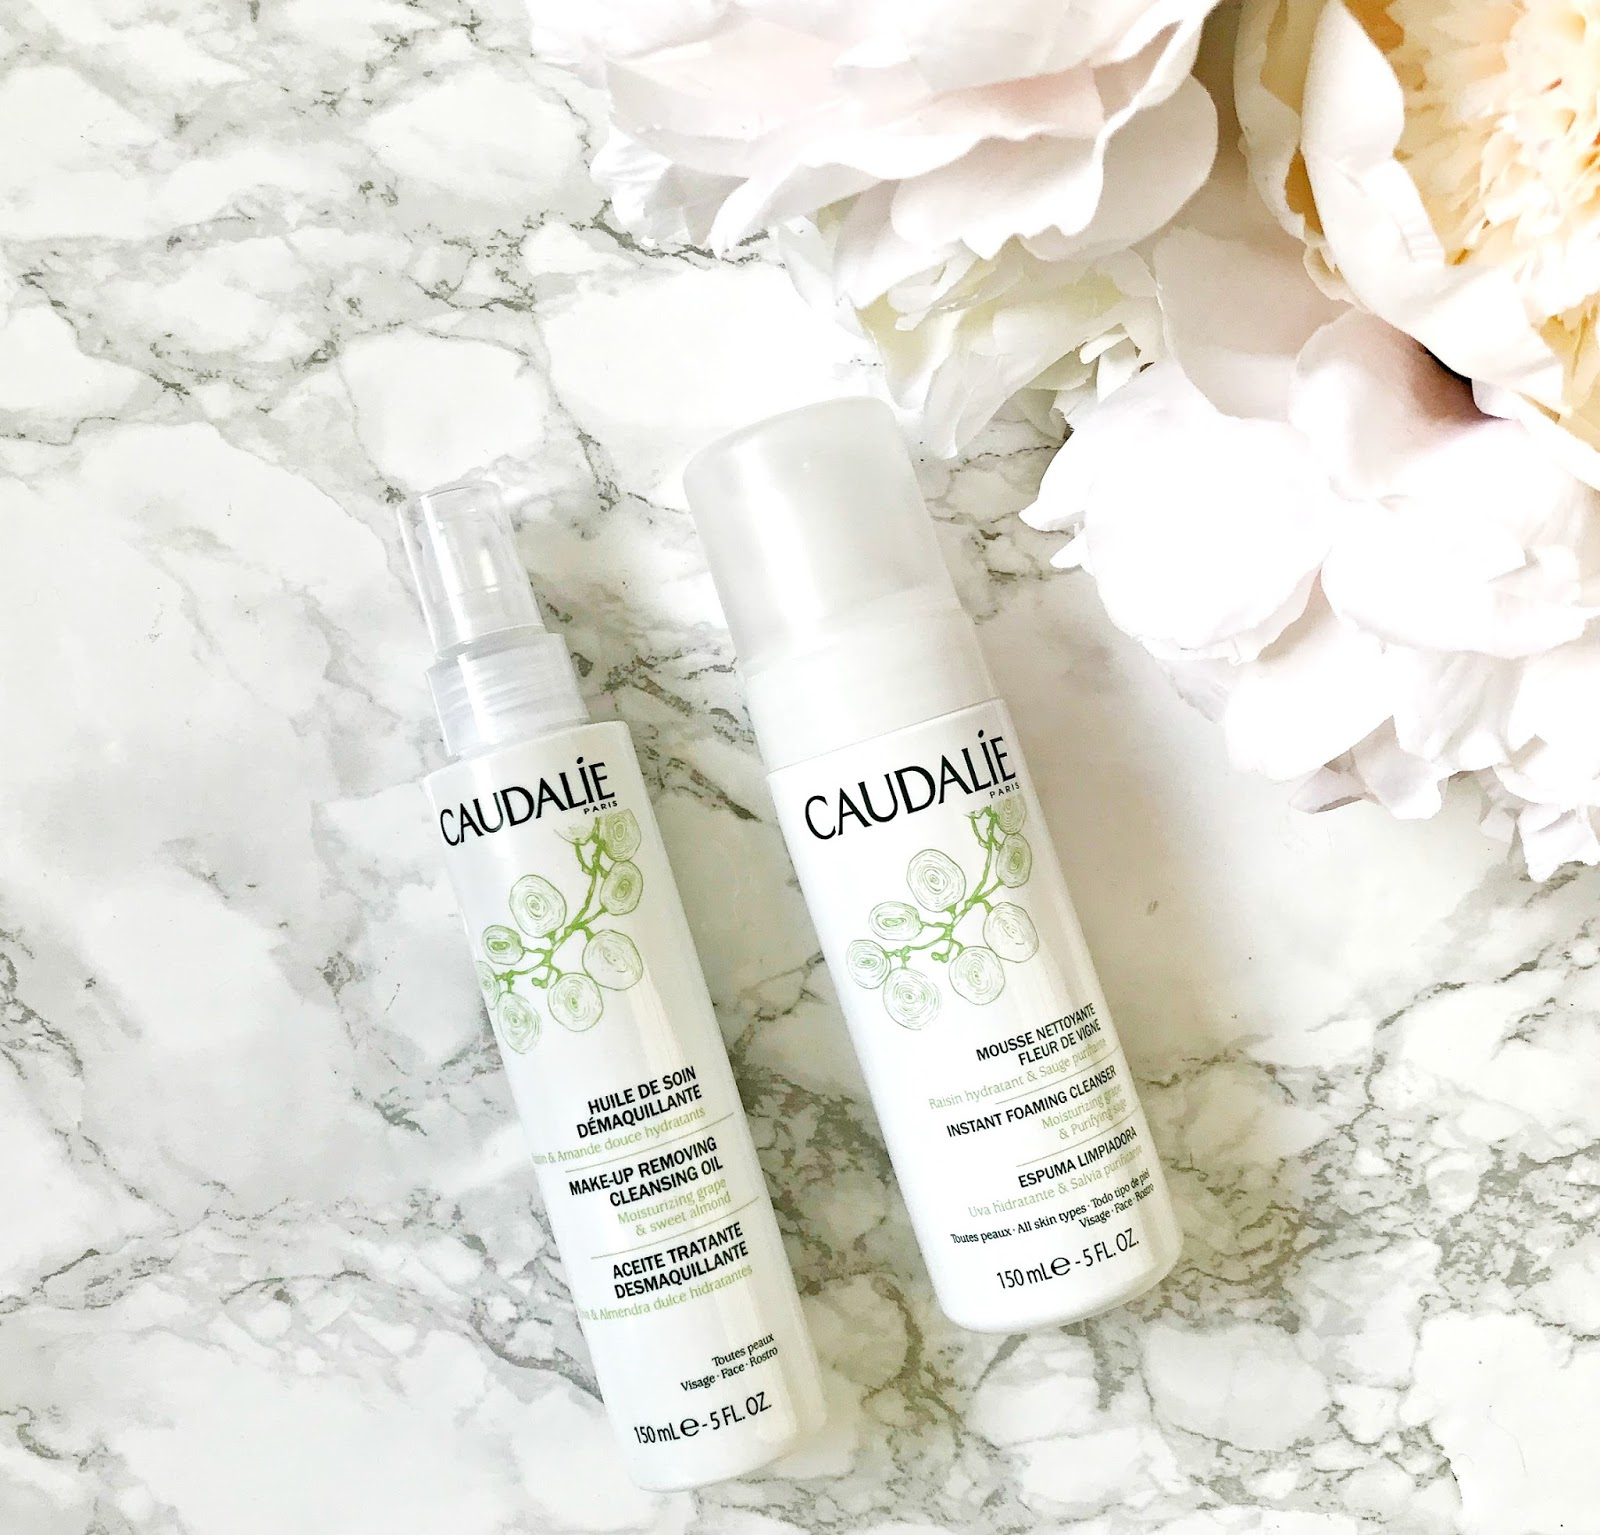 Caudalie Cleansing Oil Review, Caudalie Instant Foaming Cleanser Review